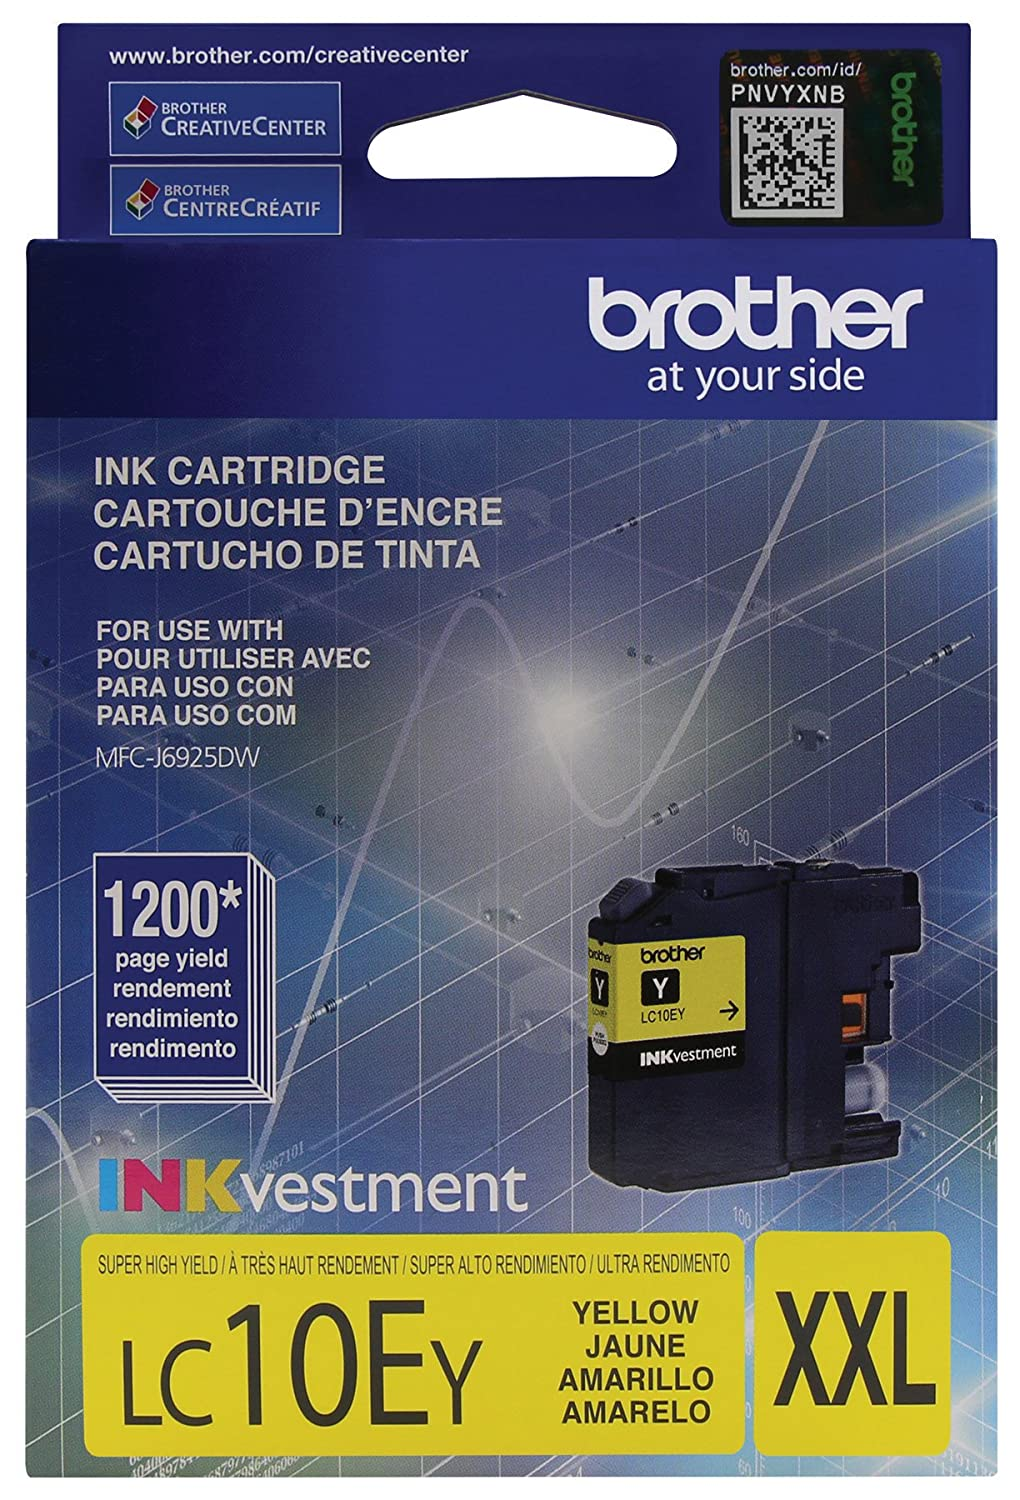 Brother Printer LC10EY Super High Yield Yellow Ink Cartridge